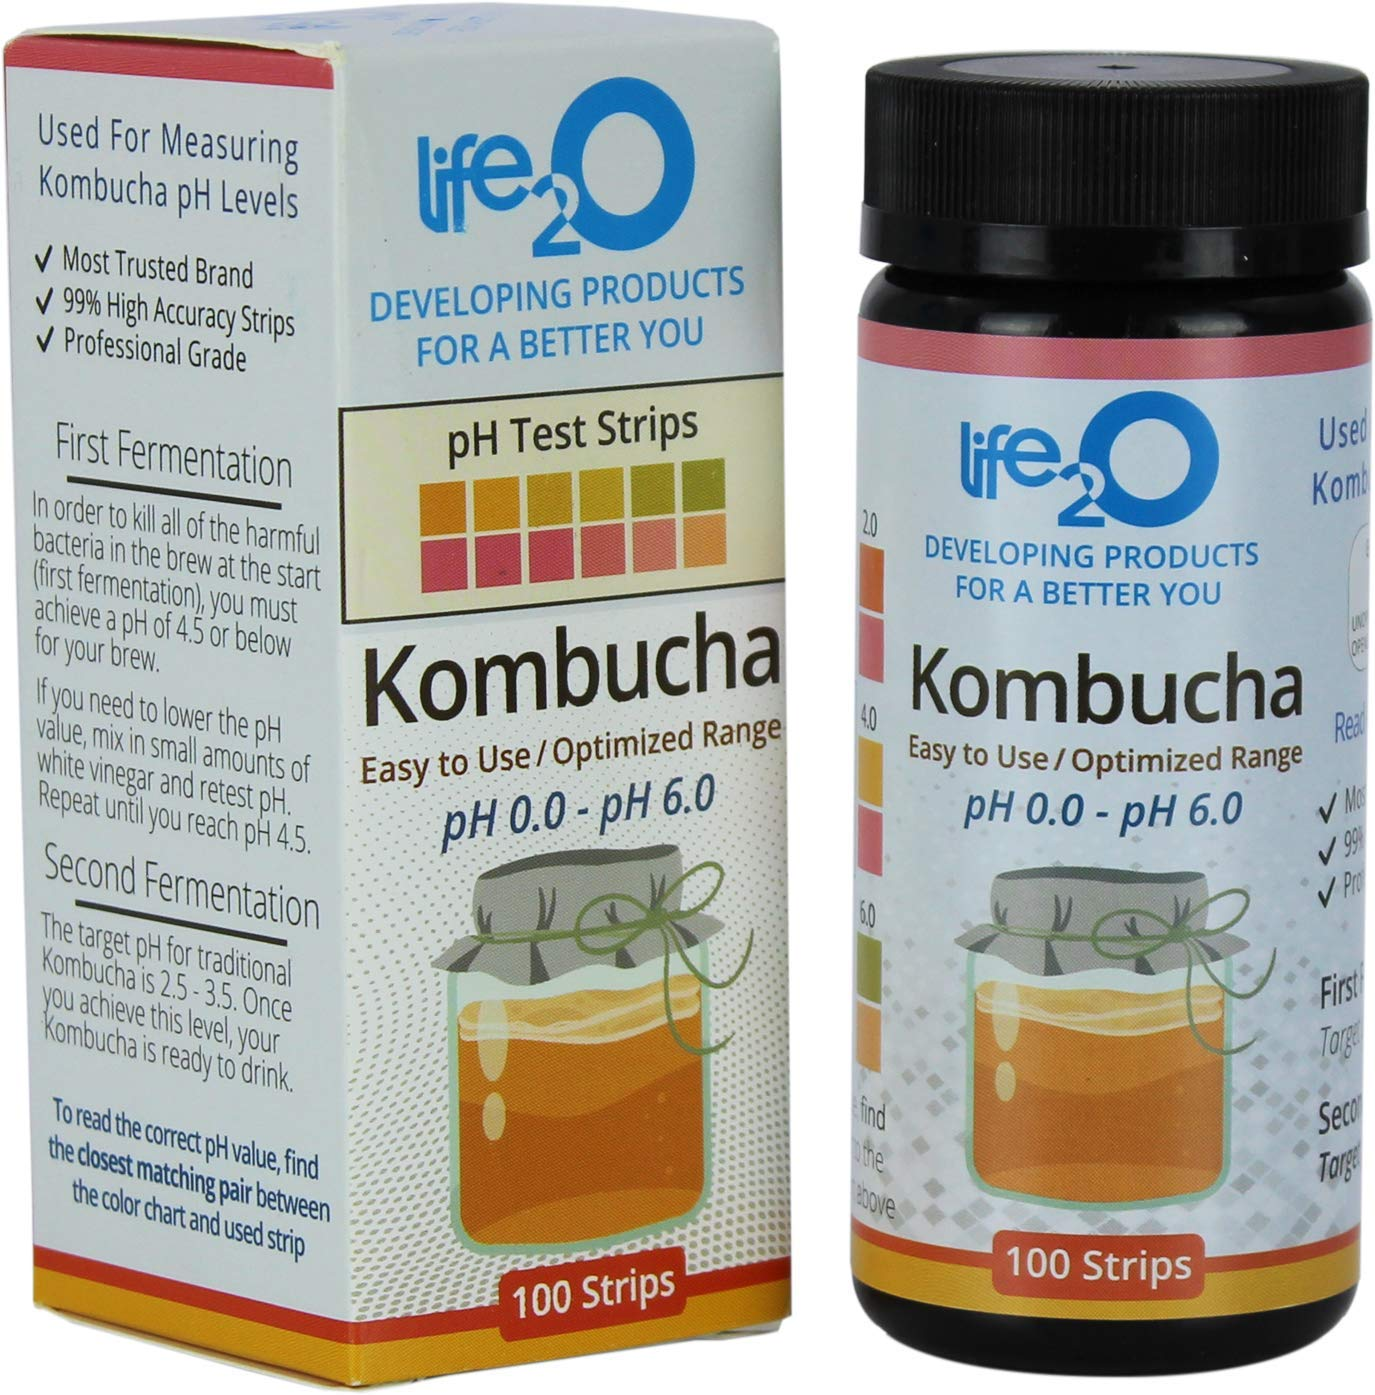 Kombucha Kit pH Test Strips, 100 pH Acid Tests for Home Fermentation and DIY Brewing 0 – 6 pH, Brew Grade pH Ferment Tester Stick, Works with Scoby Starter, Mushroom Water, Tea, Wine, Beer and Alcohol